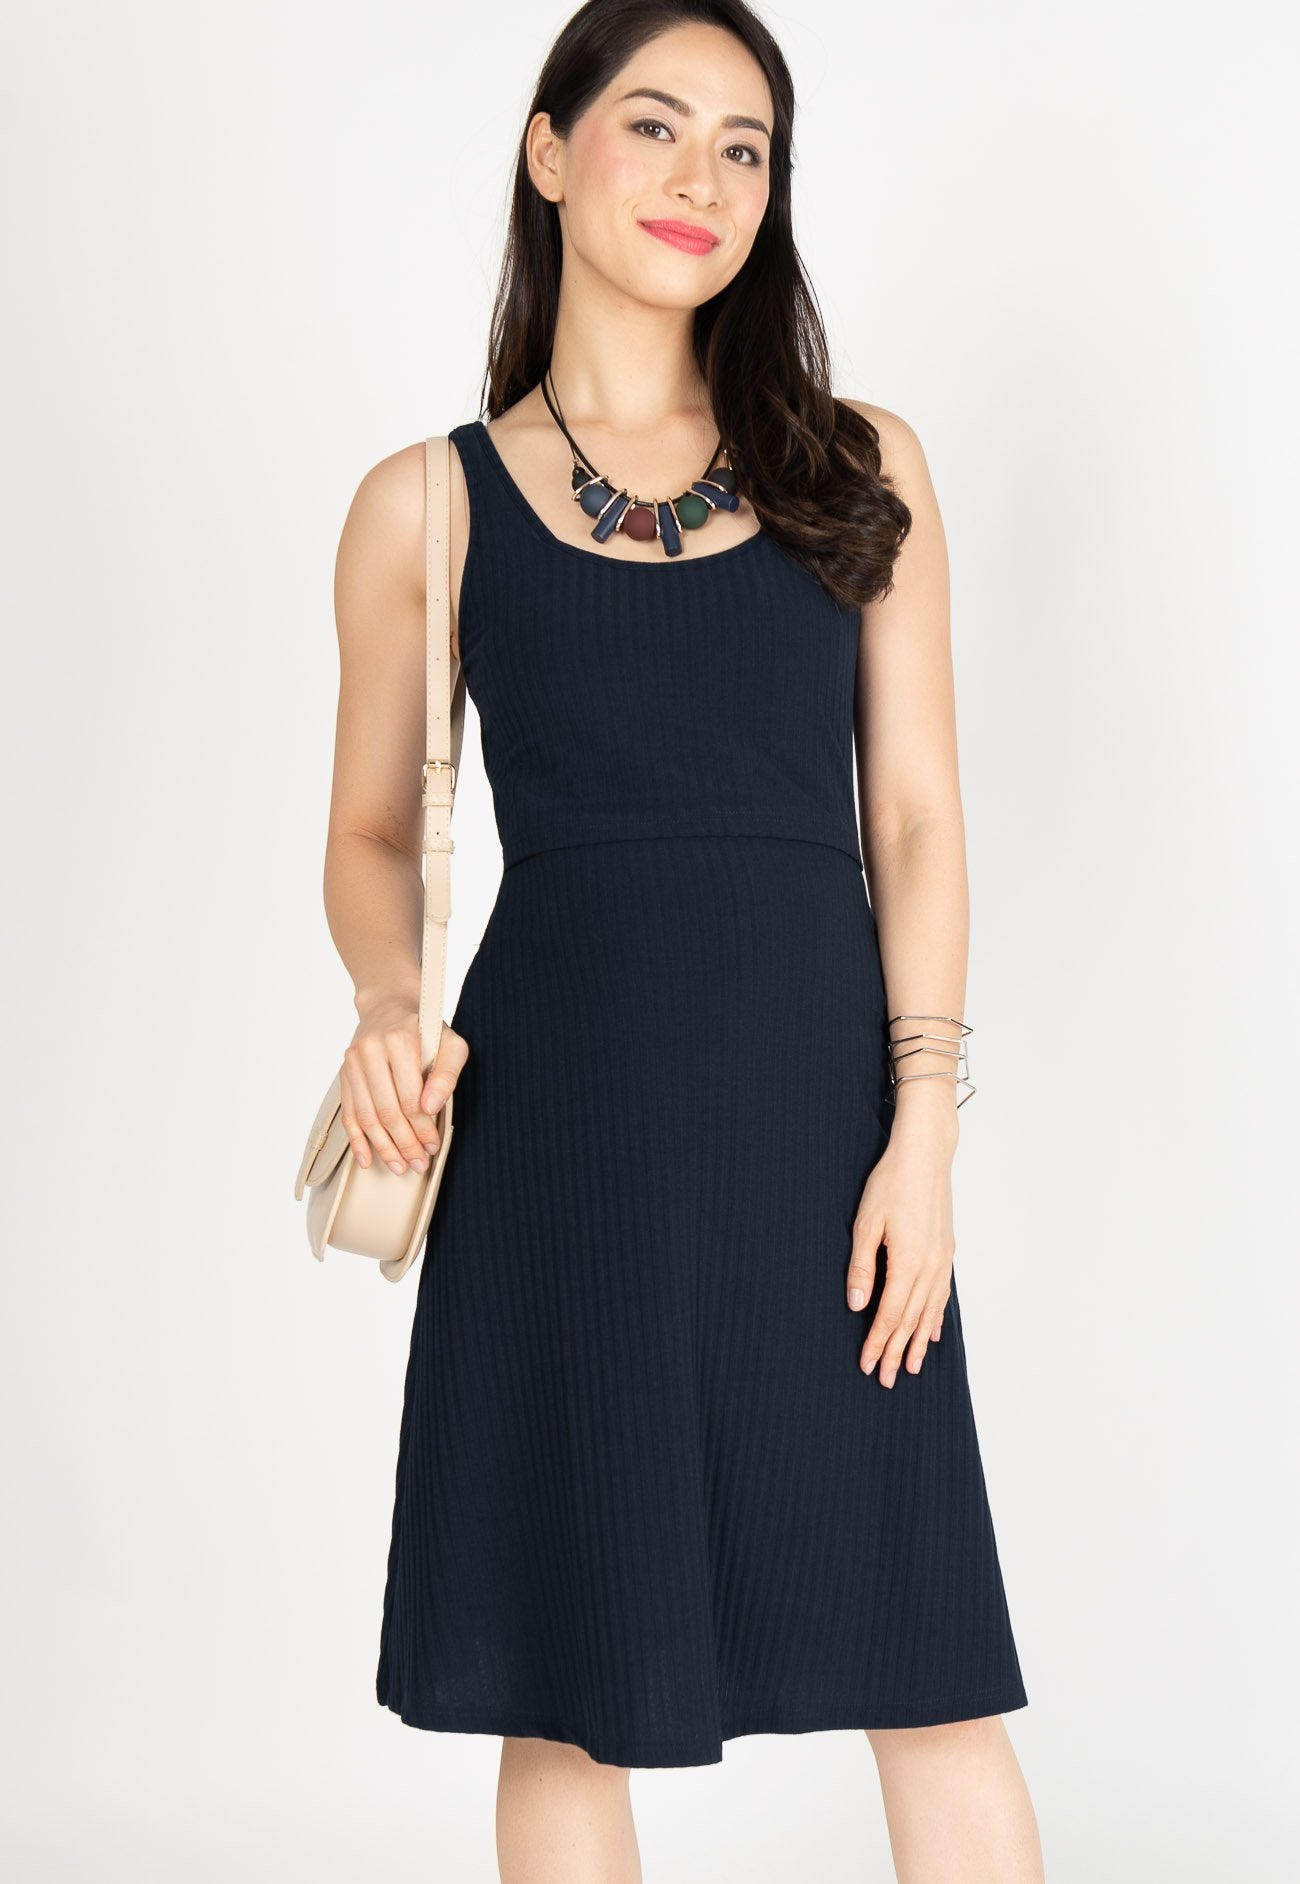 Knitted Nursing Swing Dress in Navy  by JumpEatCry - Maternity and nursing wear